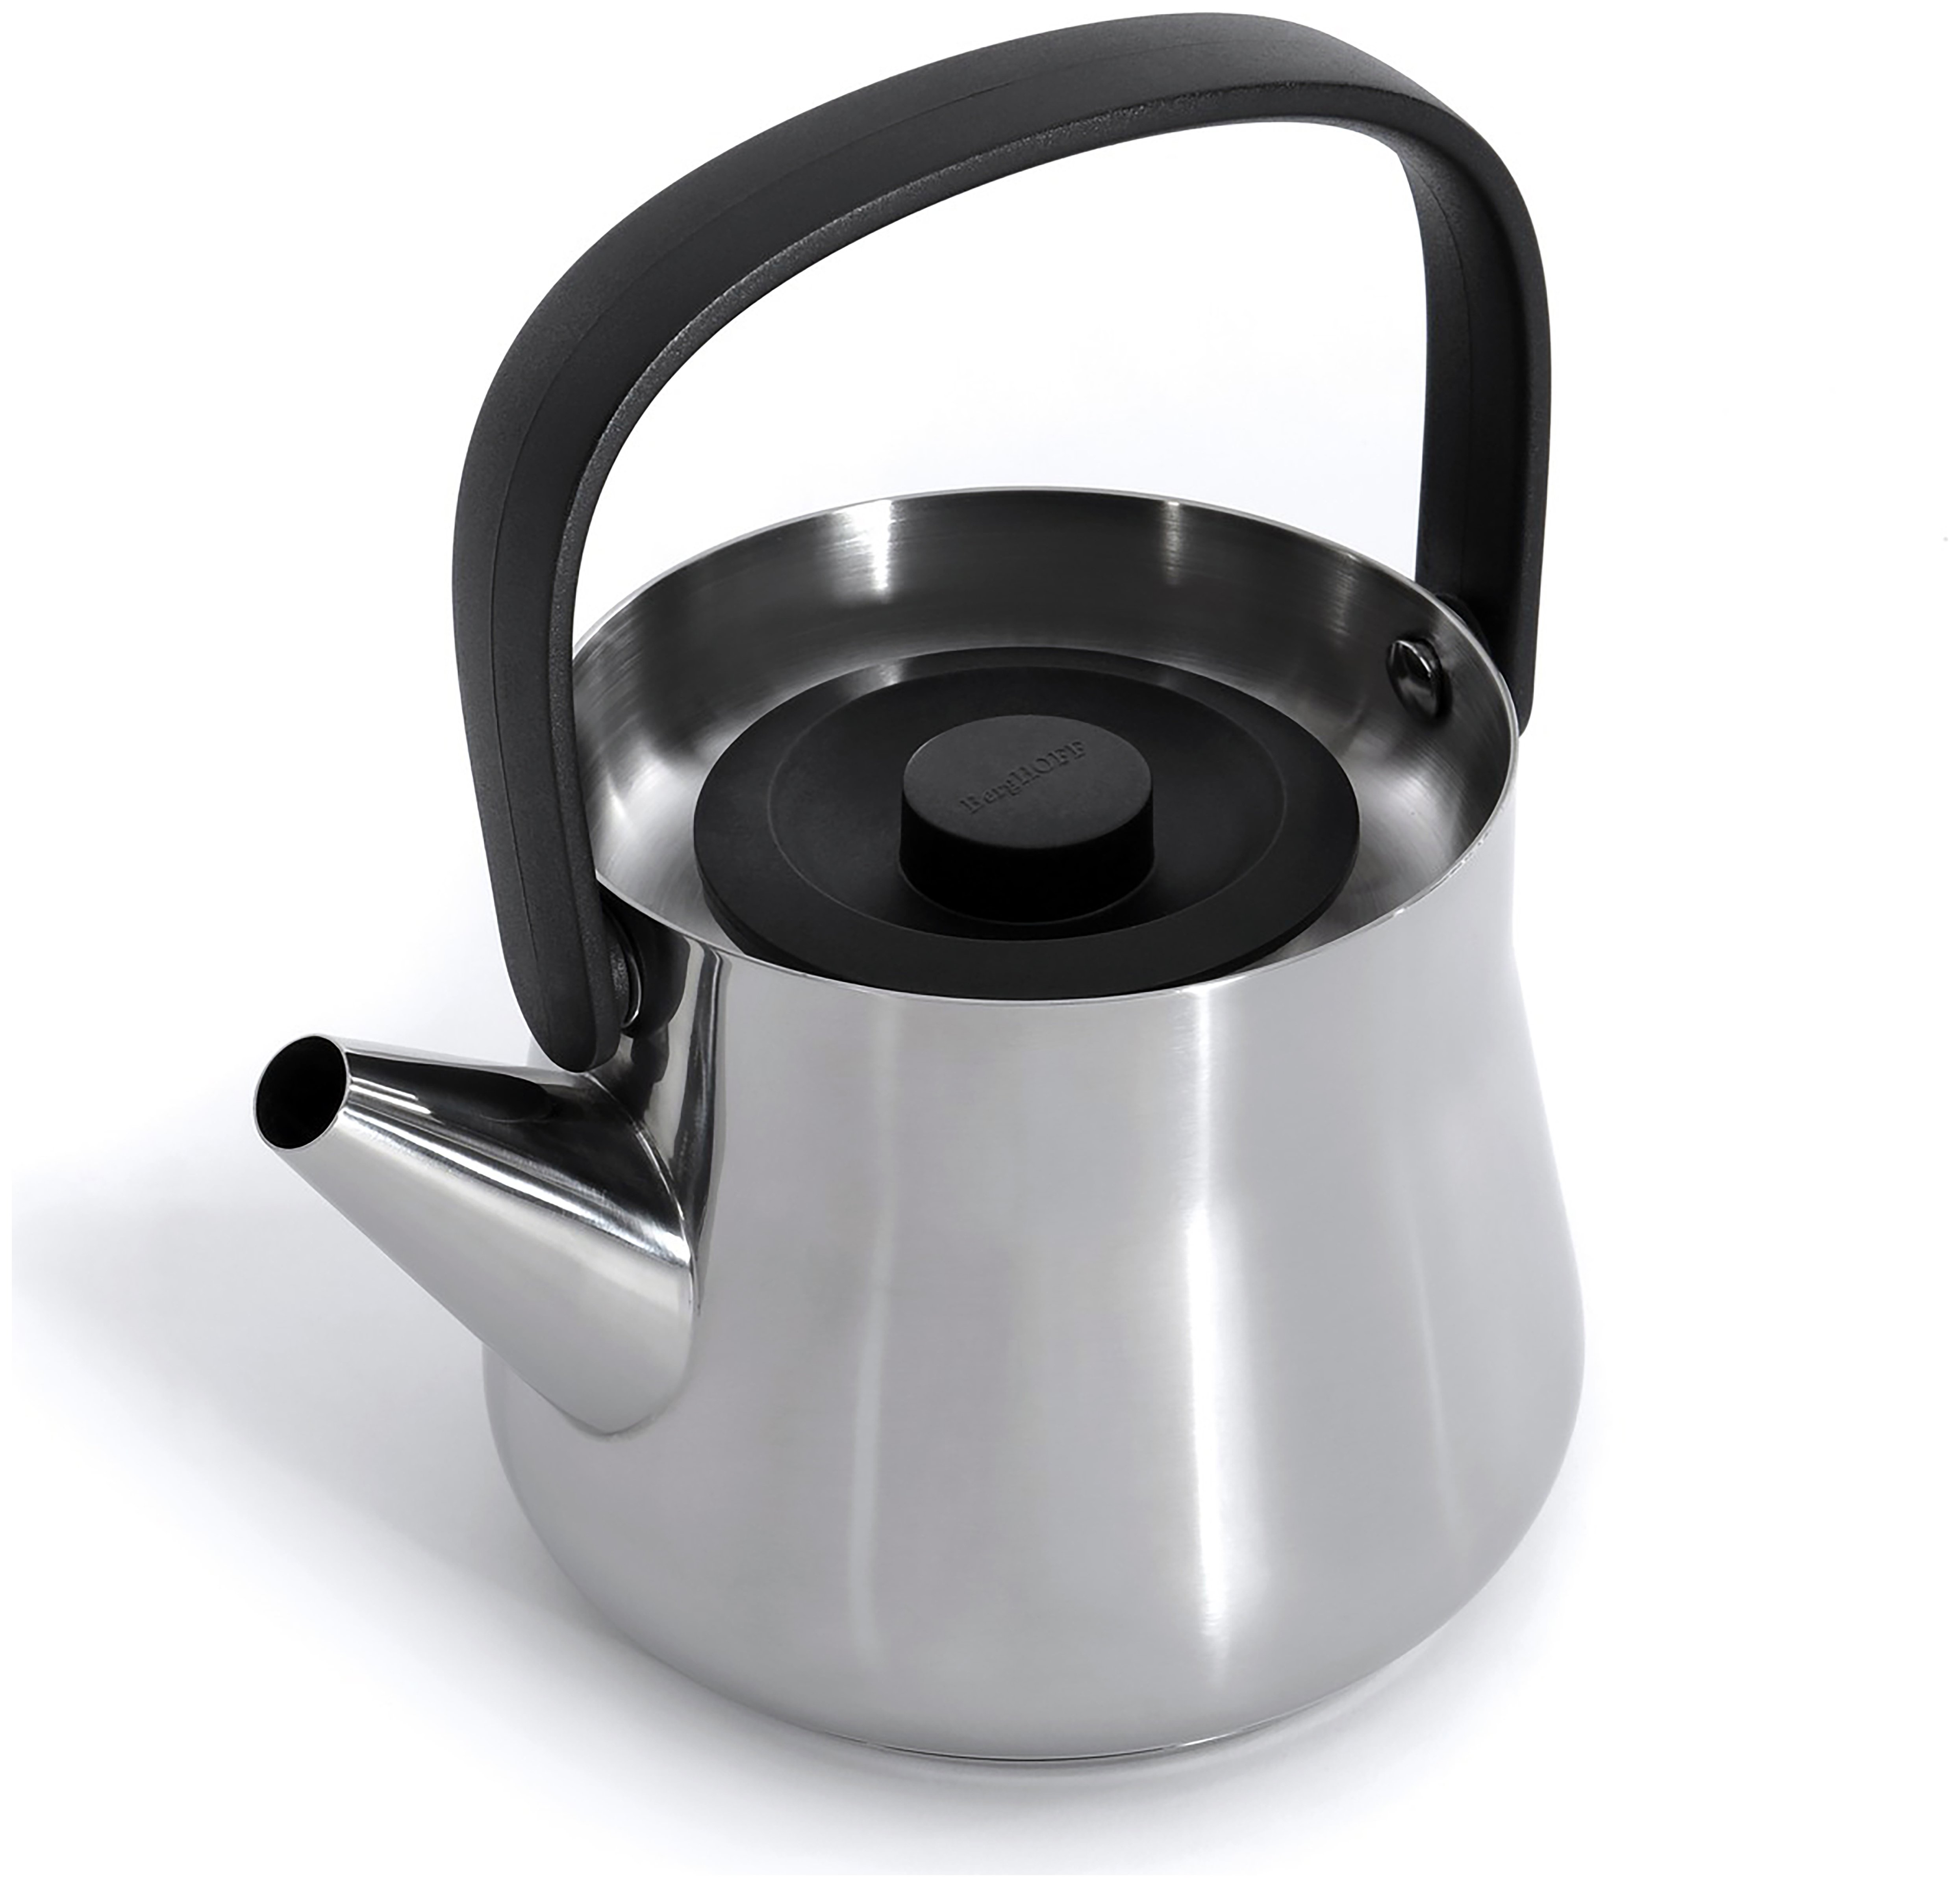 BergHOFF Ron Stainless Steel Teapot with Strainer